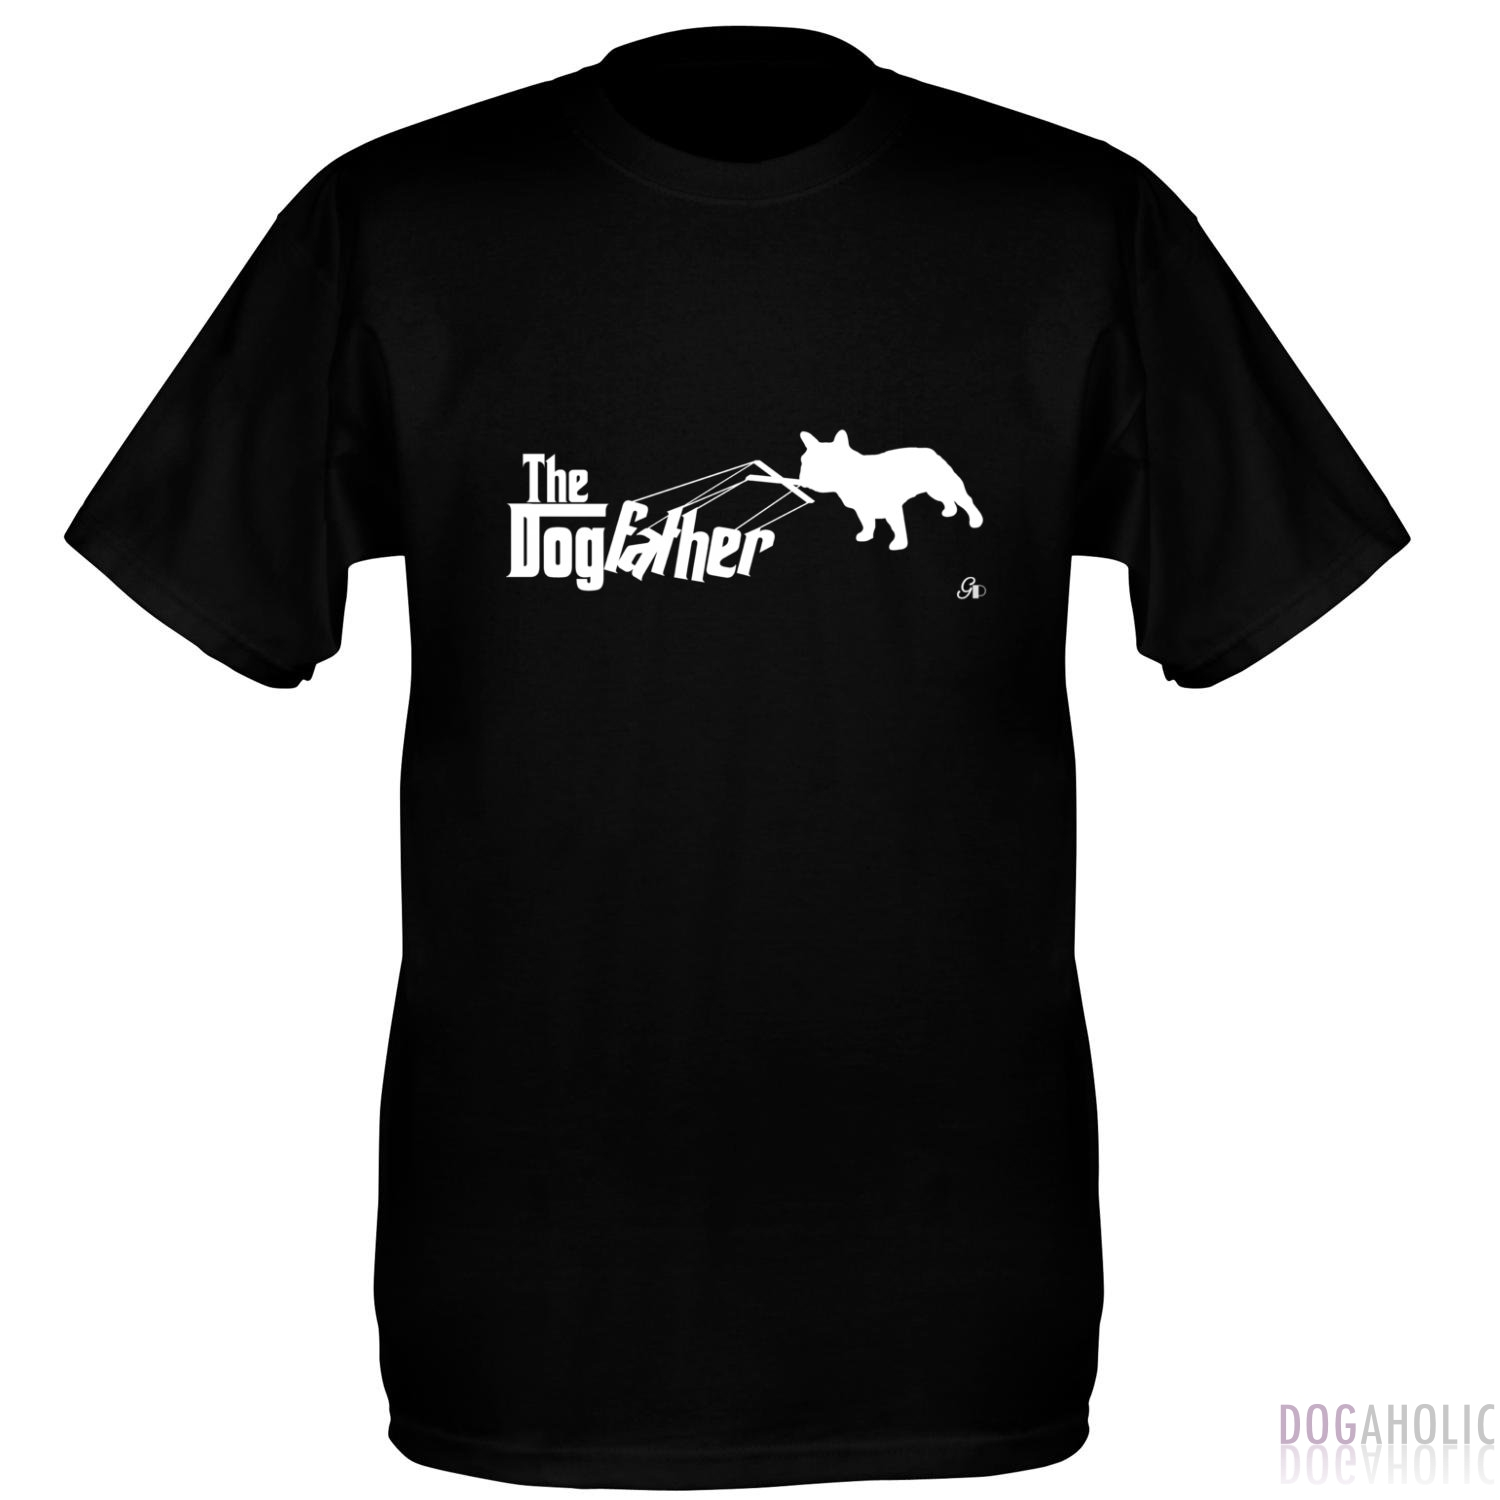 DogFather Men's T-Shirt in Black